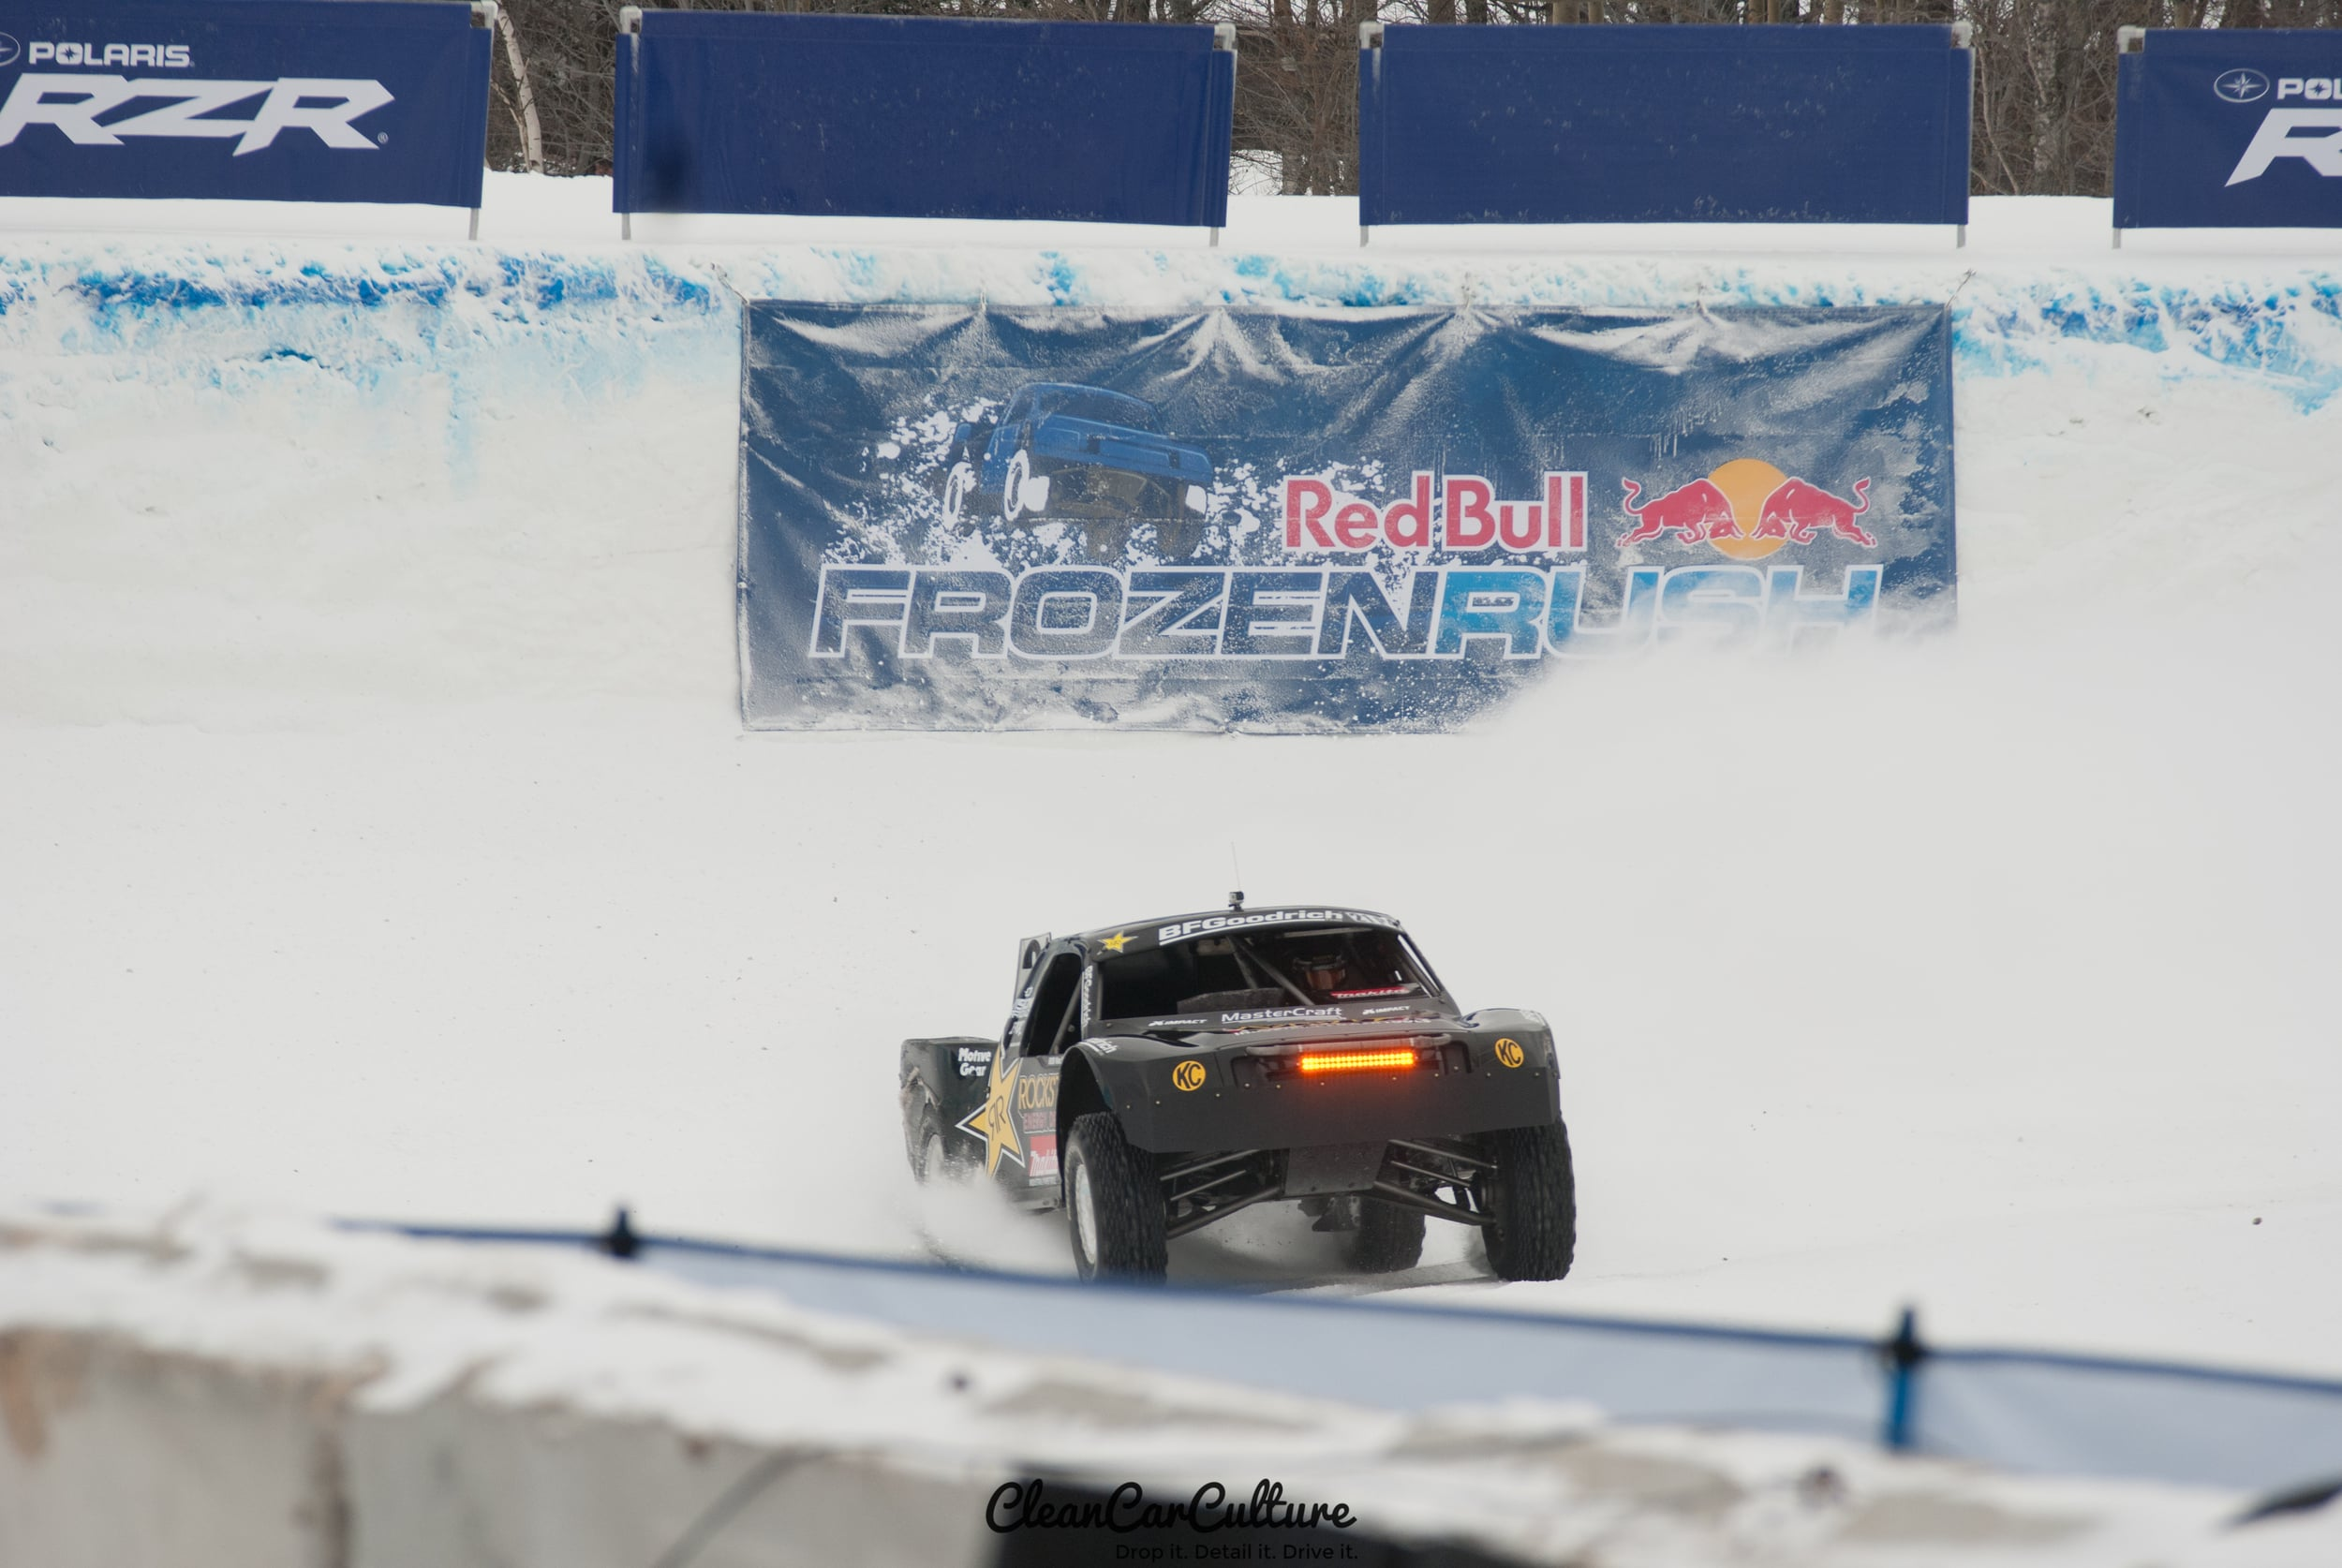 FrozenRush2016-0349.jpg